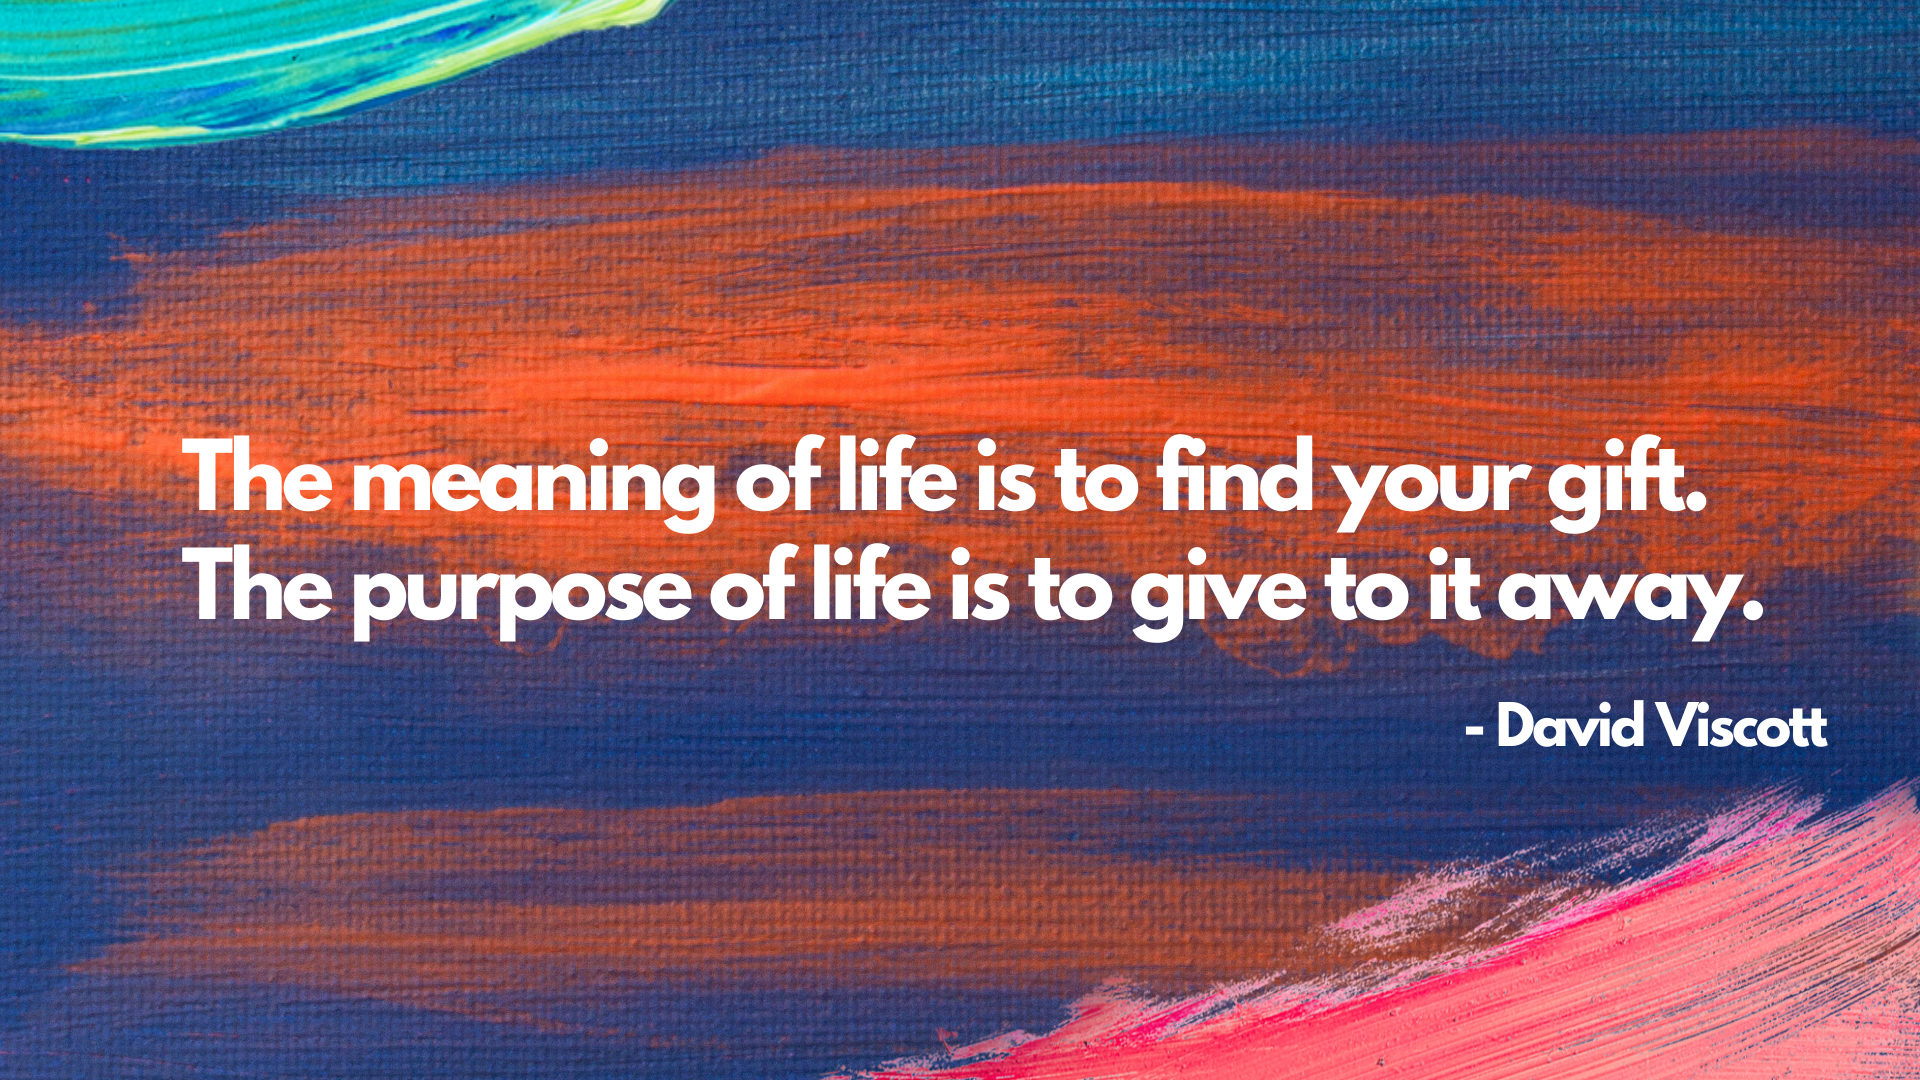 The meaning of life is to find your gift. The purpose of life is to give to it away. – David Viscott[1920×1080]